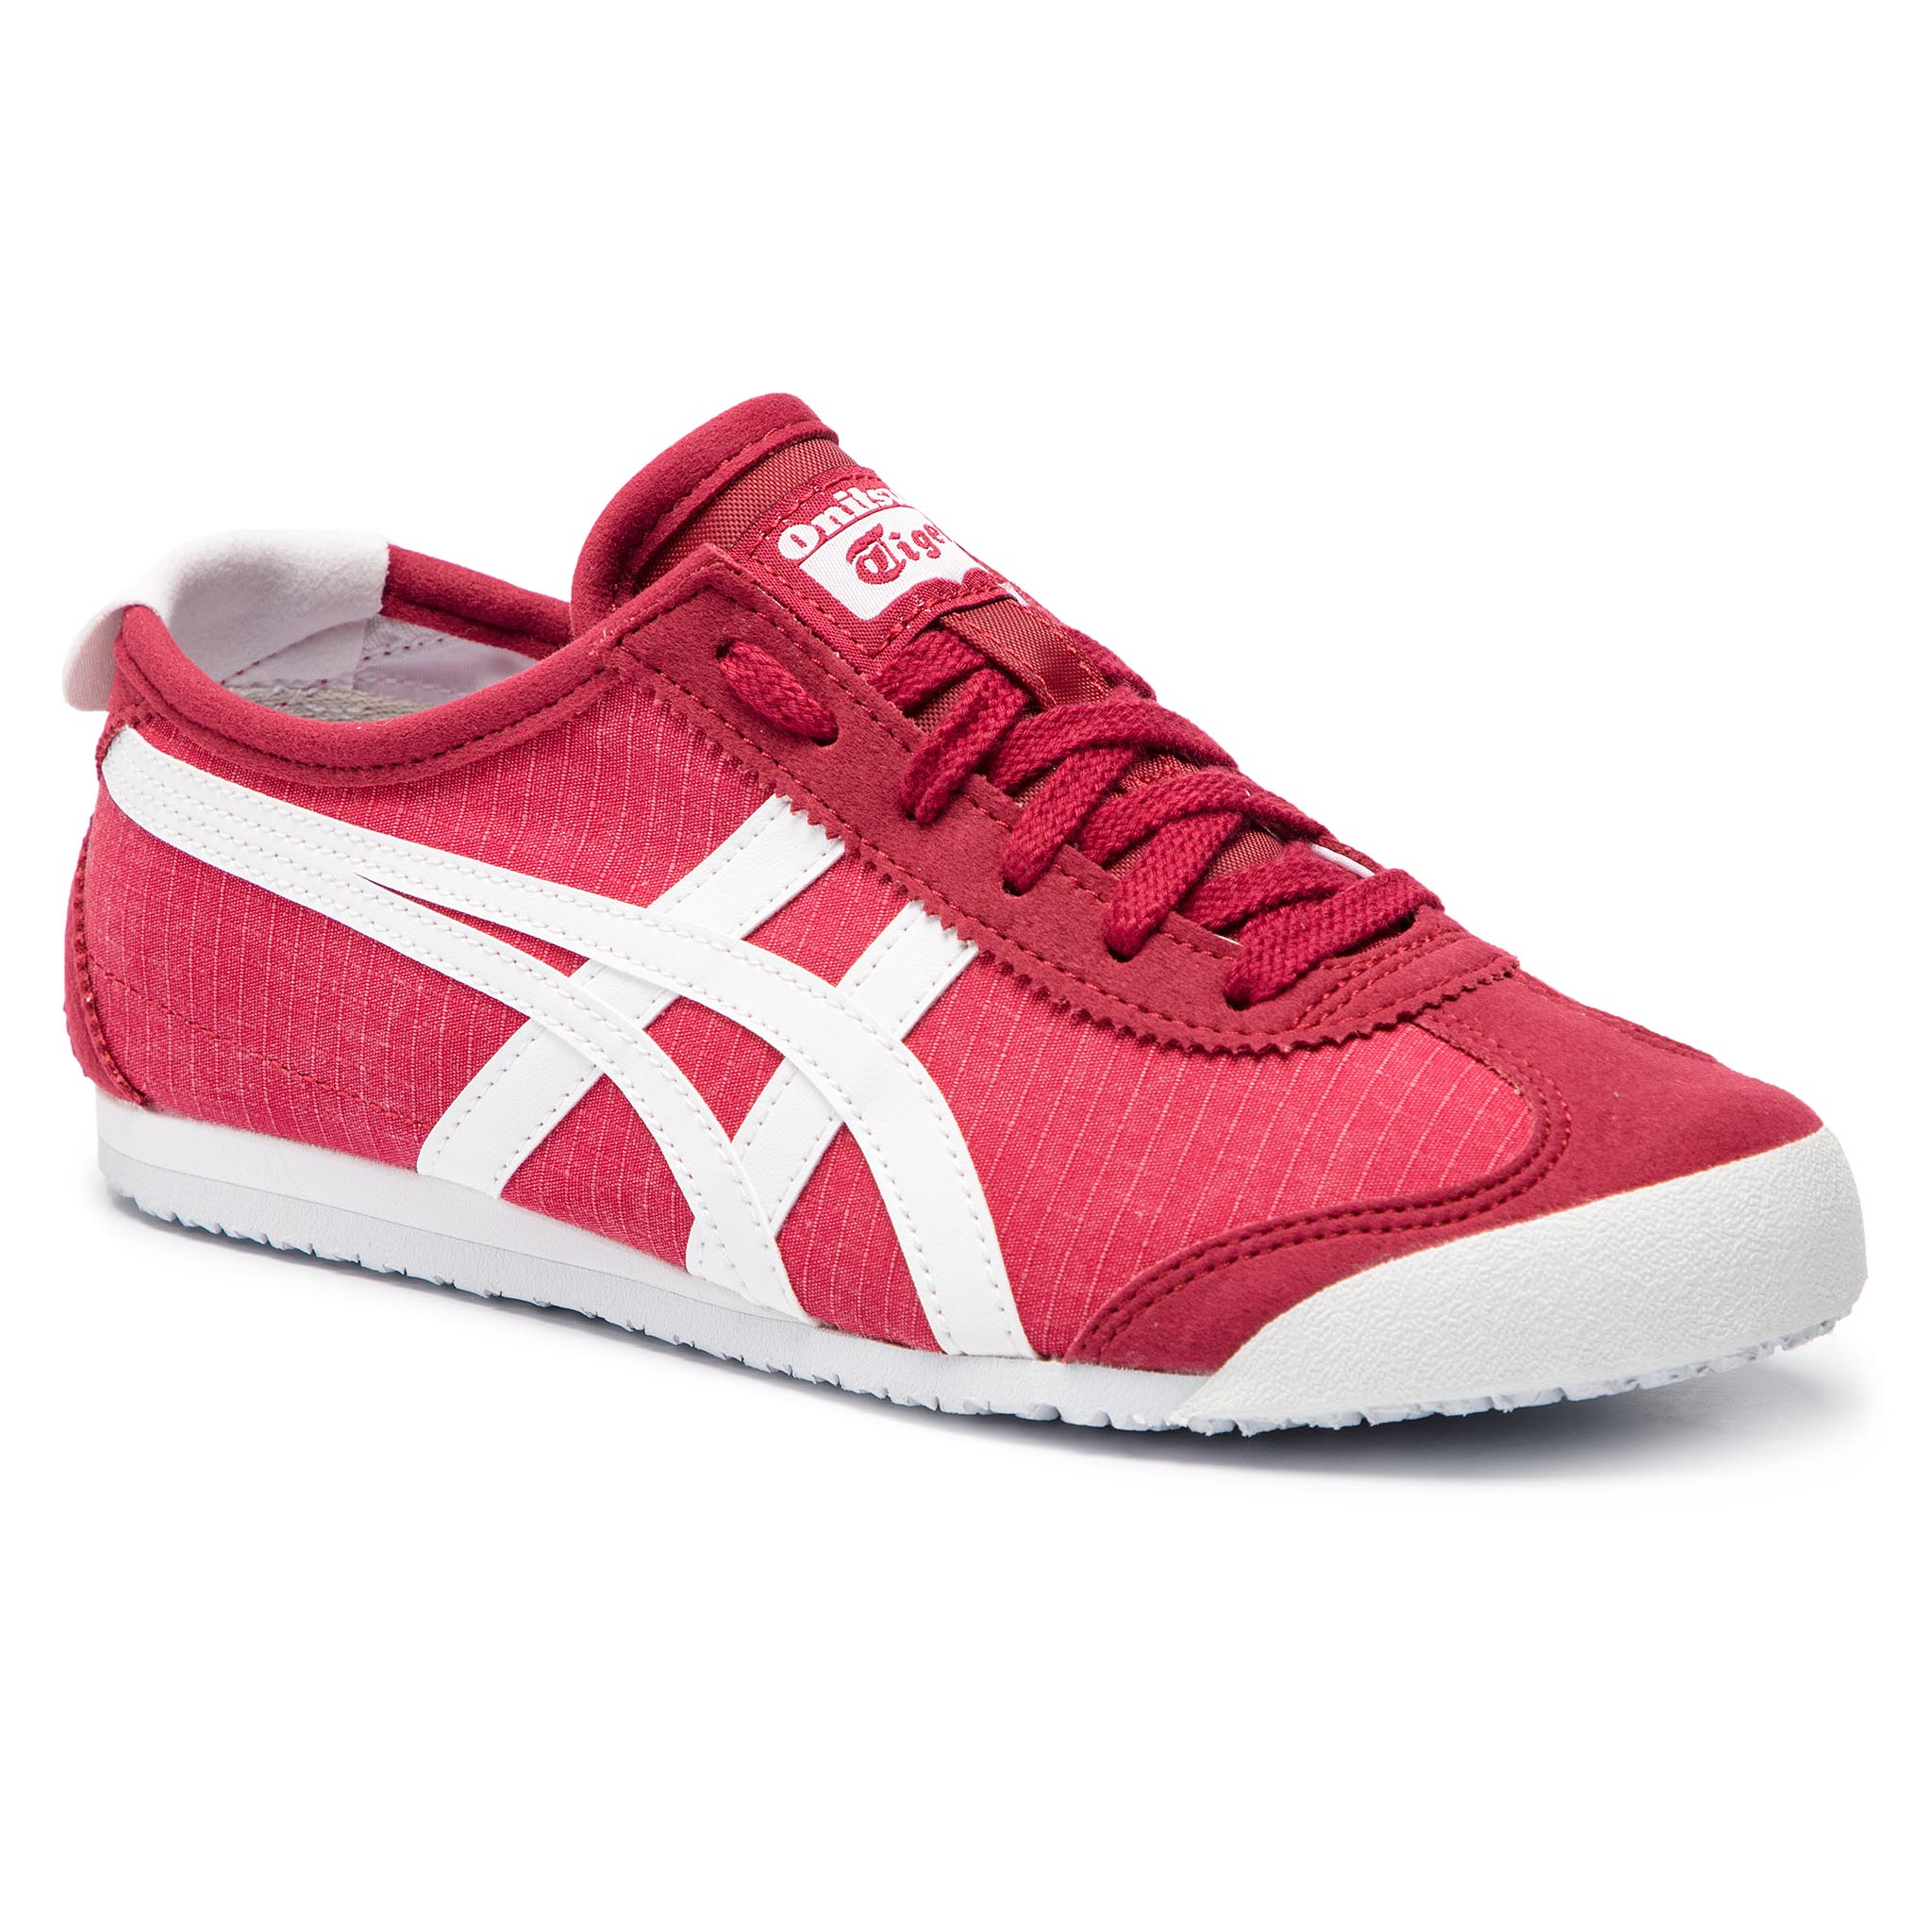 Sneakers ASICS - ONITSUKA TIGER Mexico 66 1183A223 Classic Red/White 600